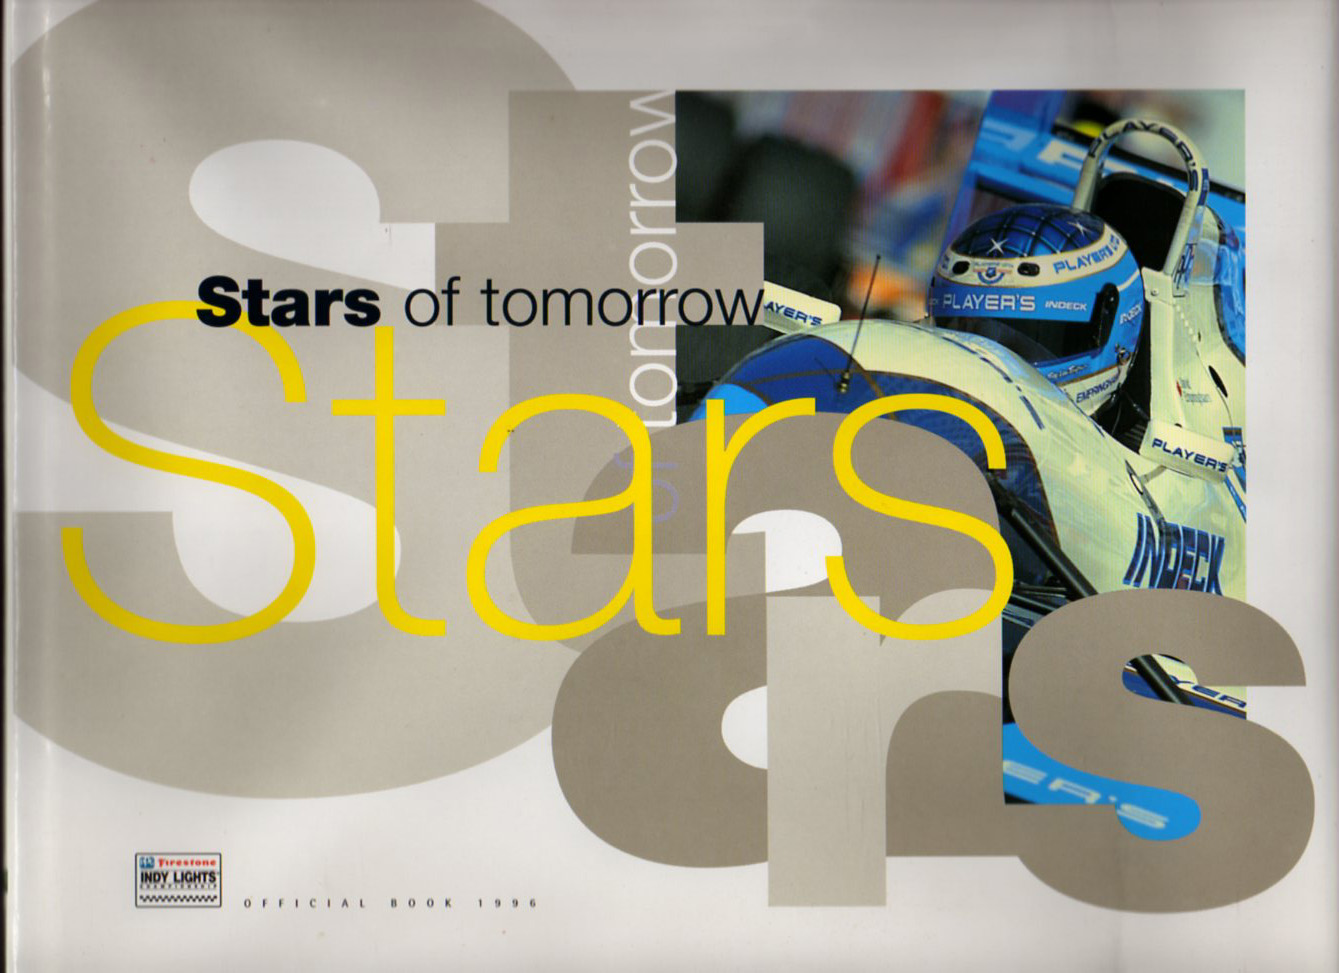 Stars of tomorrow - Official book 1996